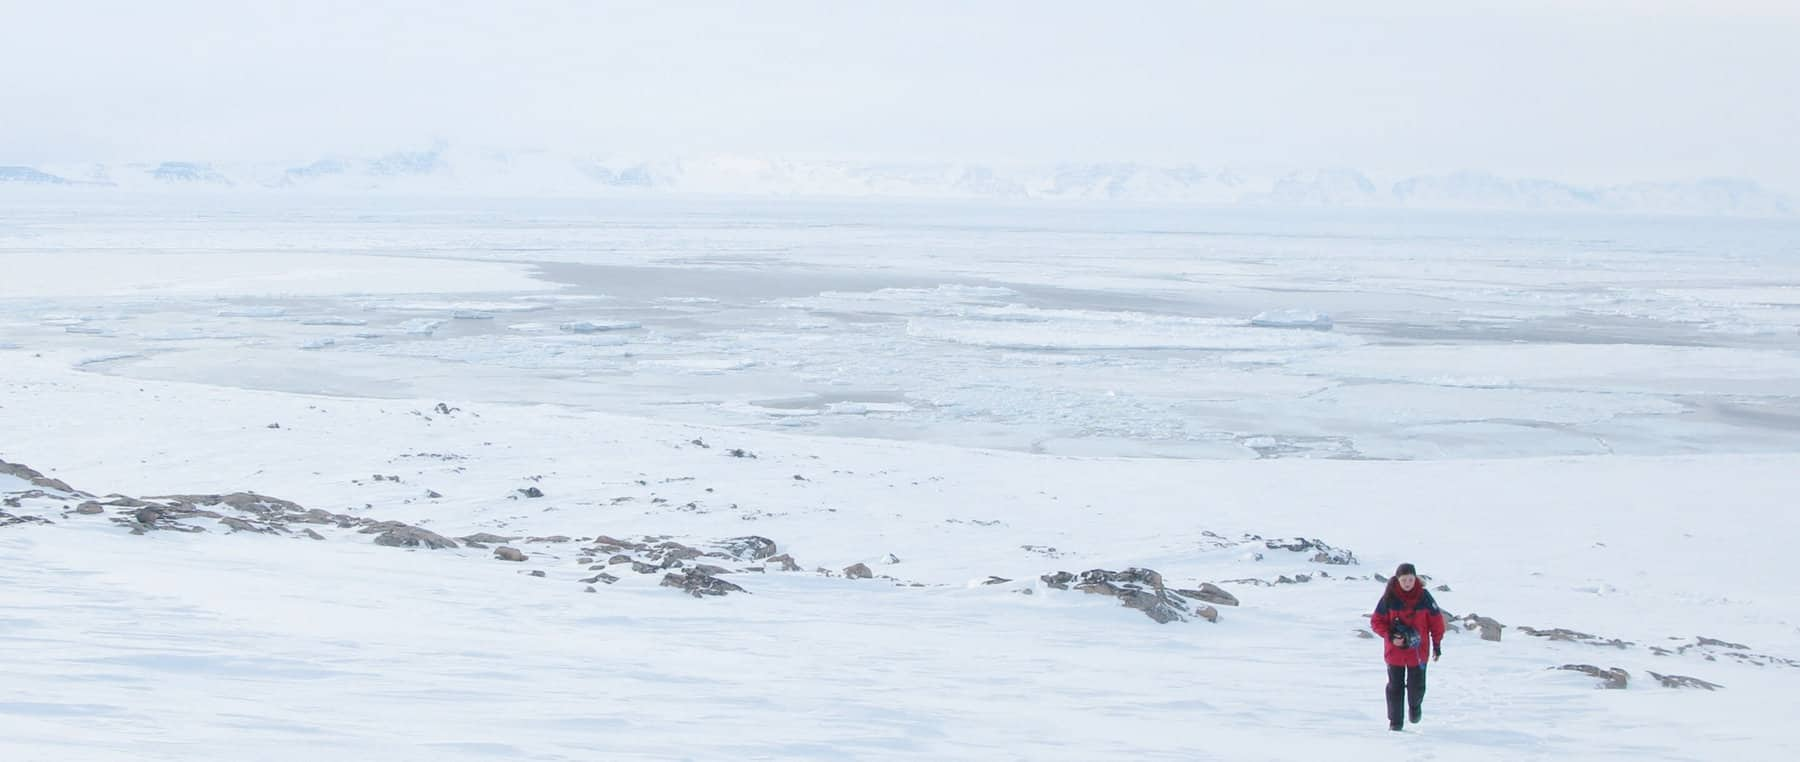 A color photo shows Dr. Thea Bechshoft walking in a a snow-covered Arctic landscape wearing a red parka.